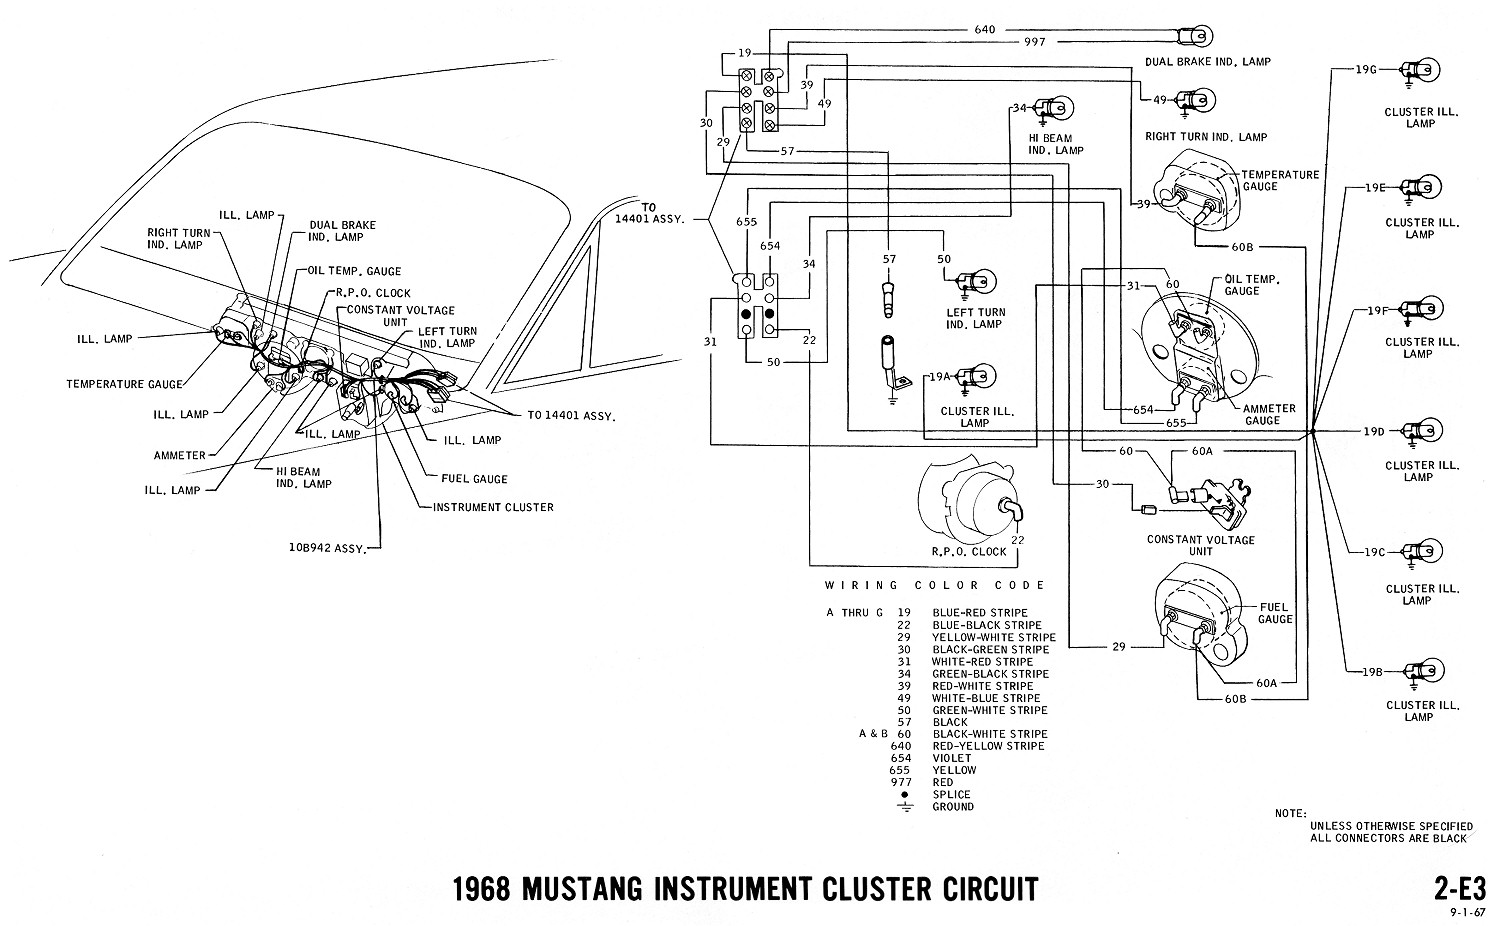 1968 mustang wiring diagram instruments wiring diagram for 1968 ford mustang the wiring diagram 2005 ford mustang instrument cluster wiring diagram at crackthecode.co